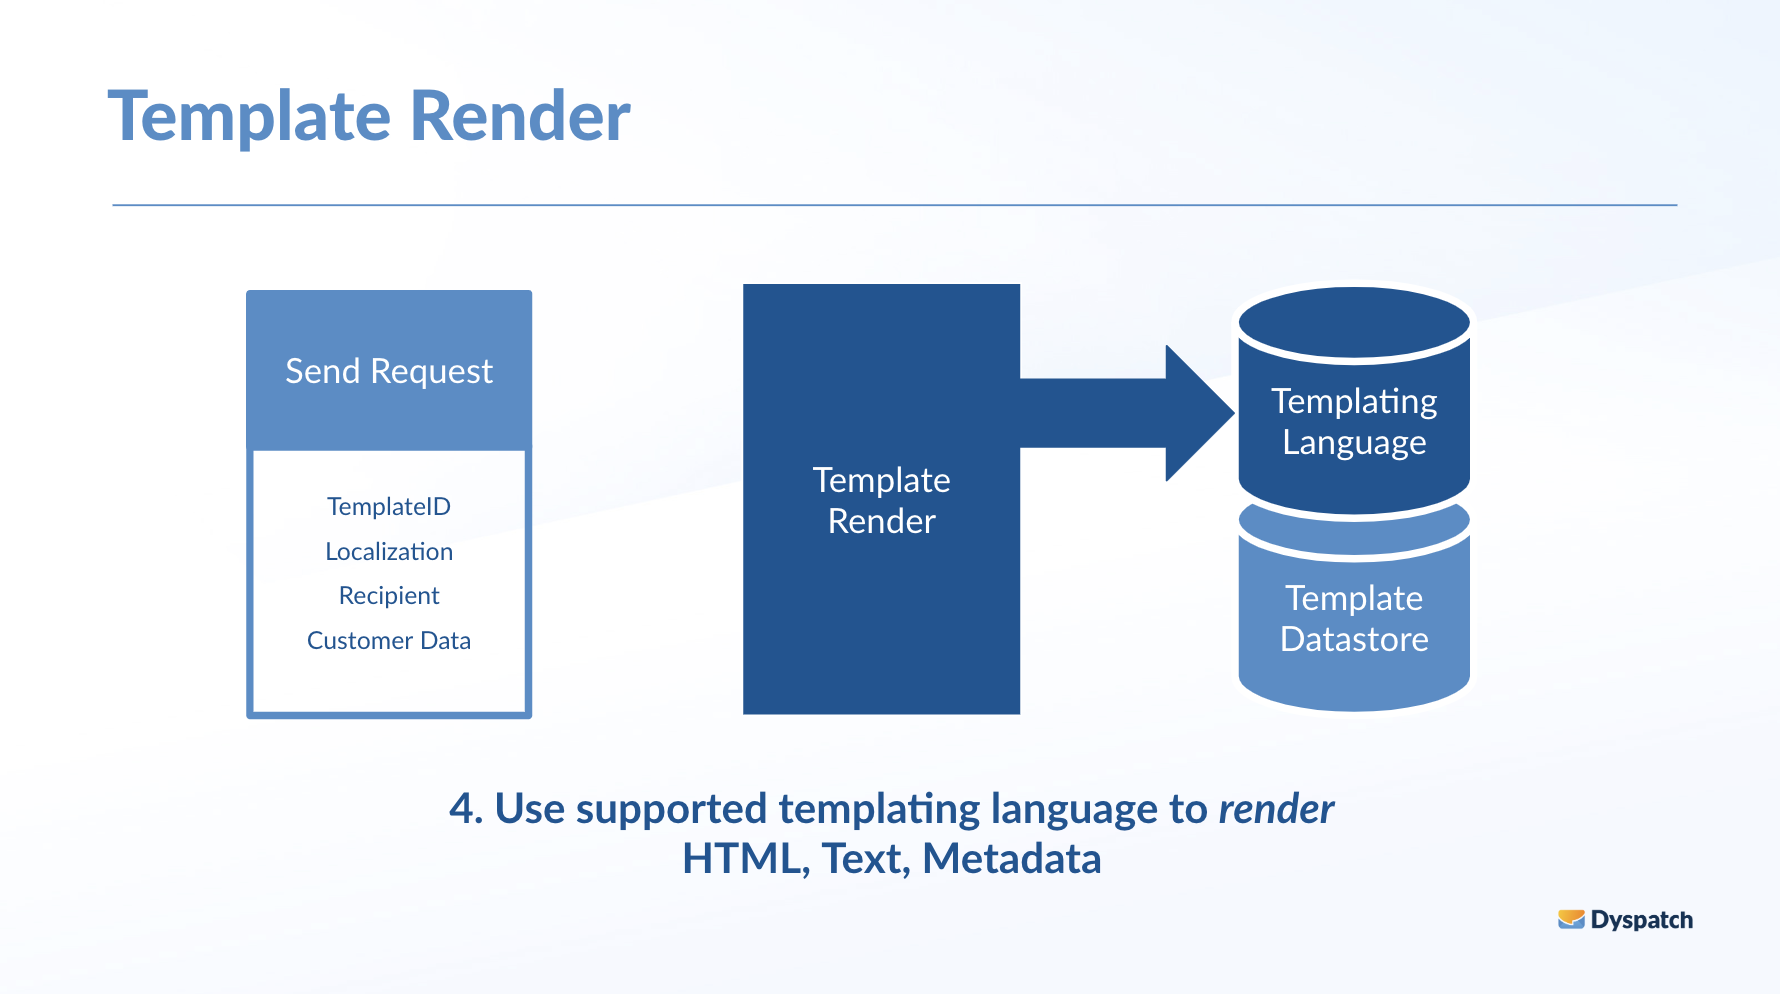 Use your templating library to render HTML, text and metadata